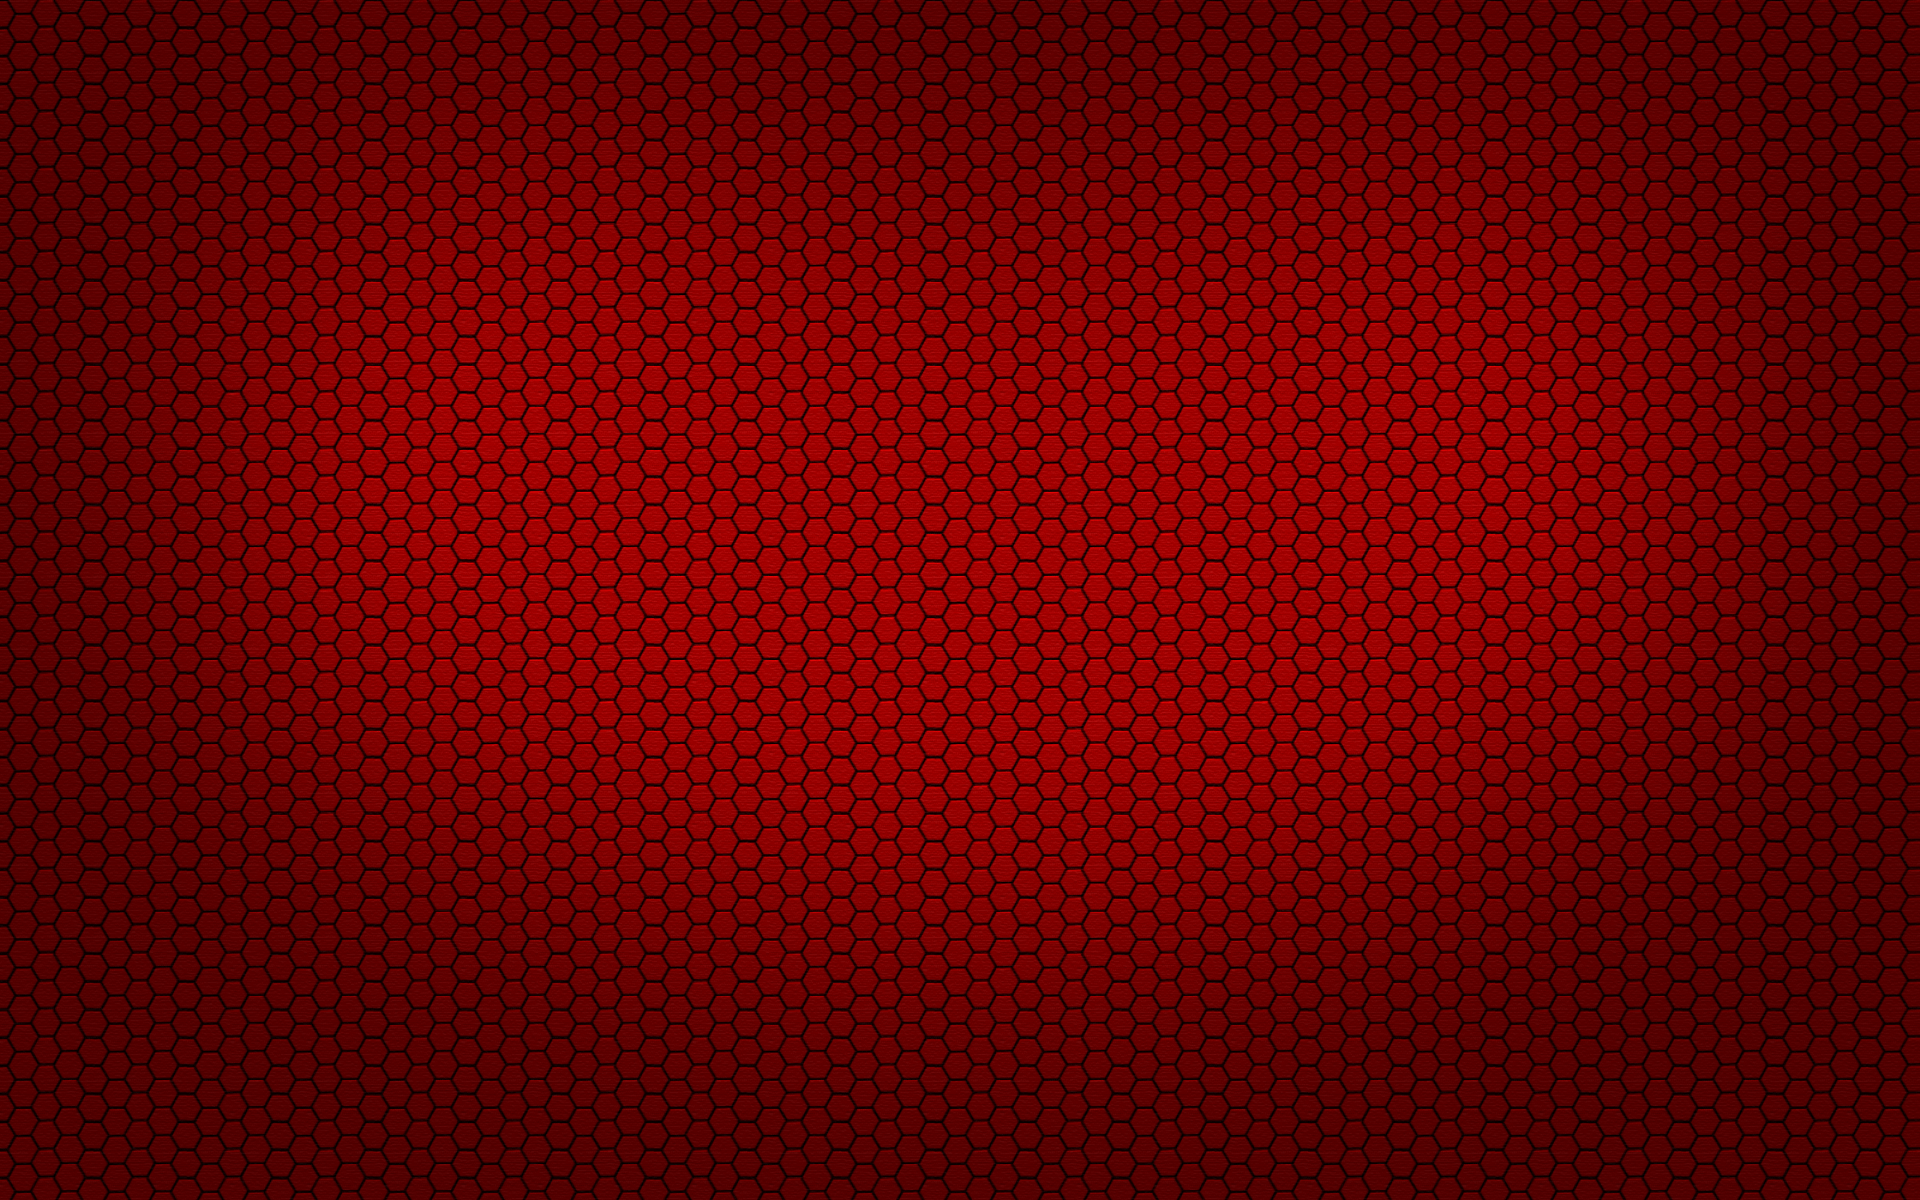 Pattern Red Patterns Backgrounds Wallpapers At Texture Wallpapers